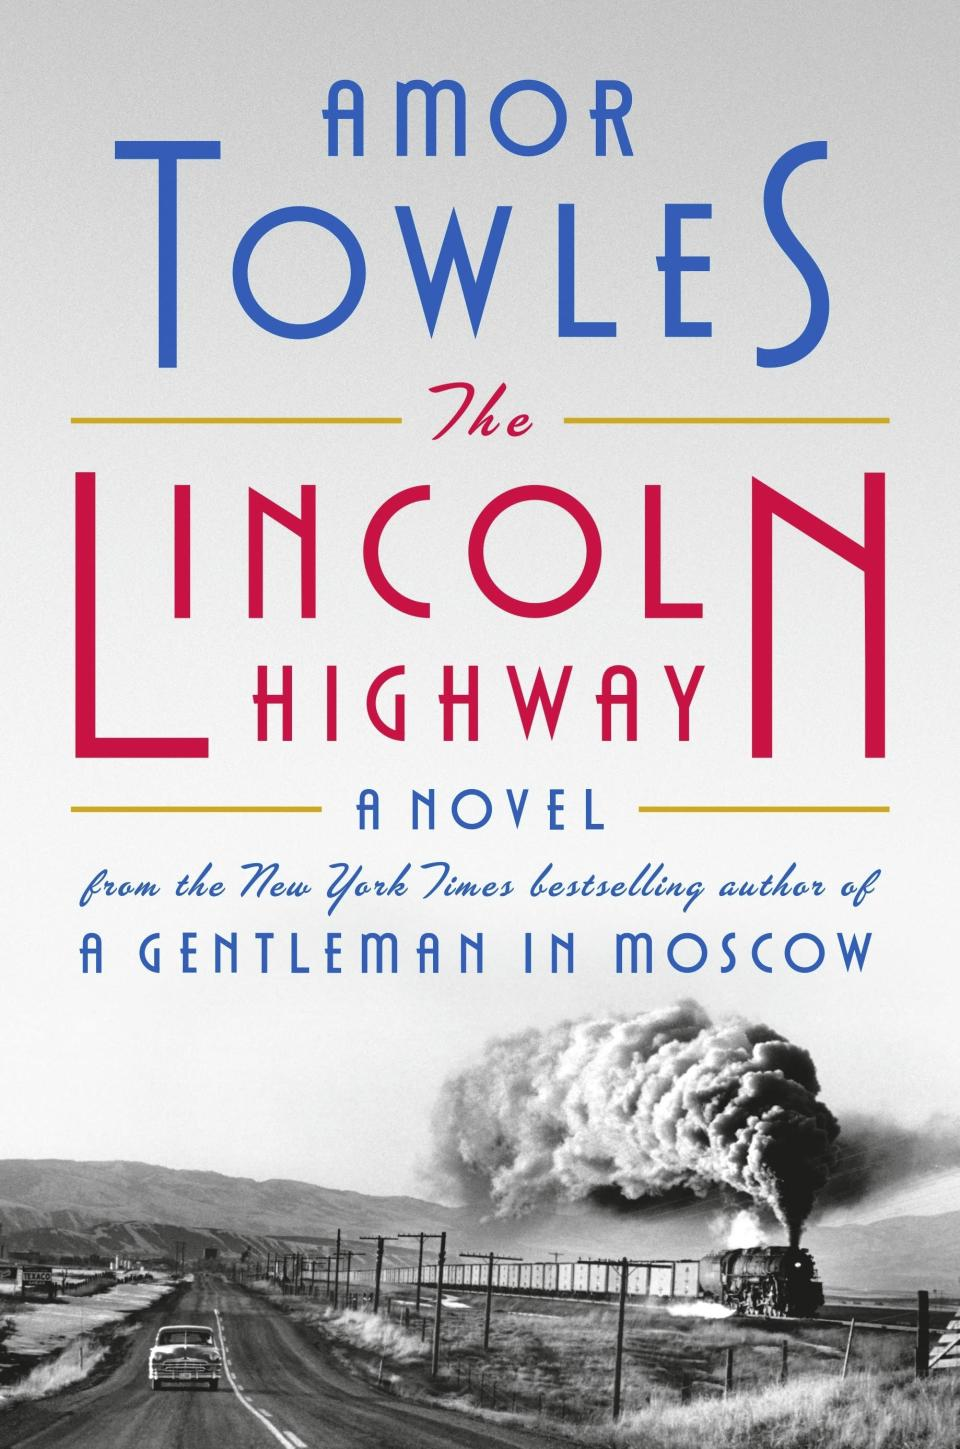 """This cover image released by Viking shows """"The Lincoln Highway,"""" a novel by Amor Towles releasing Oct. 5. (Viking via AP)"""